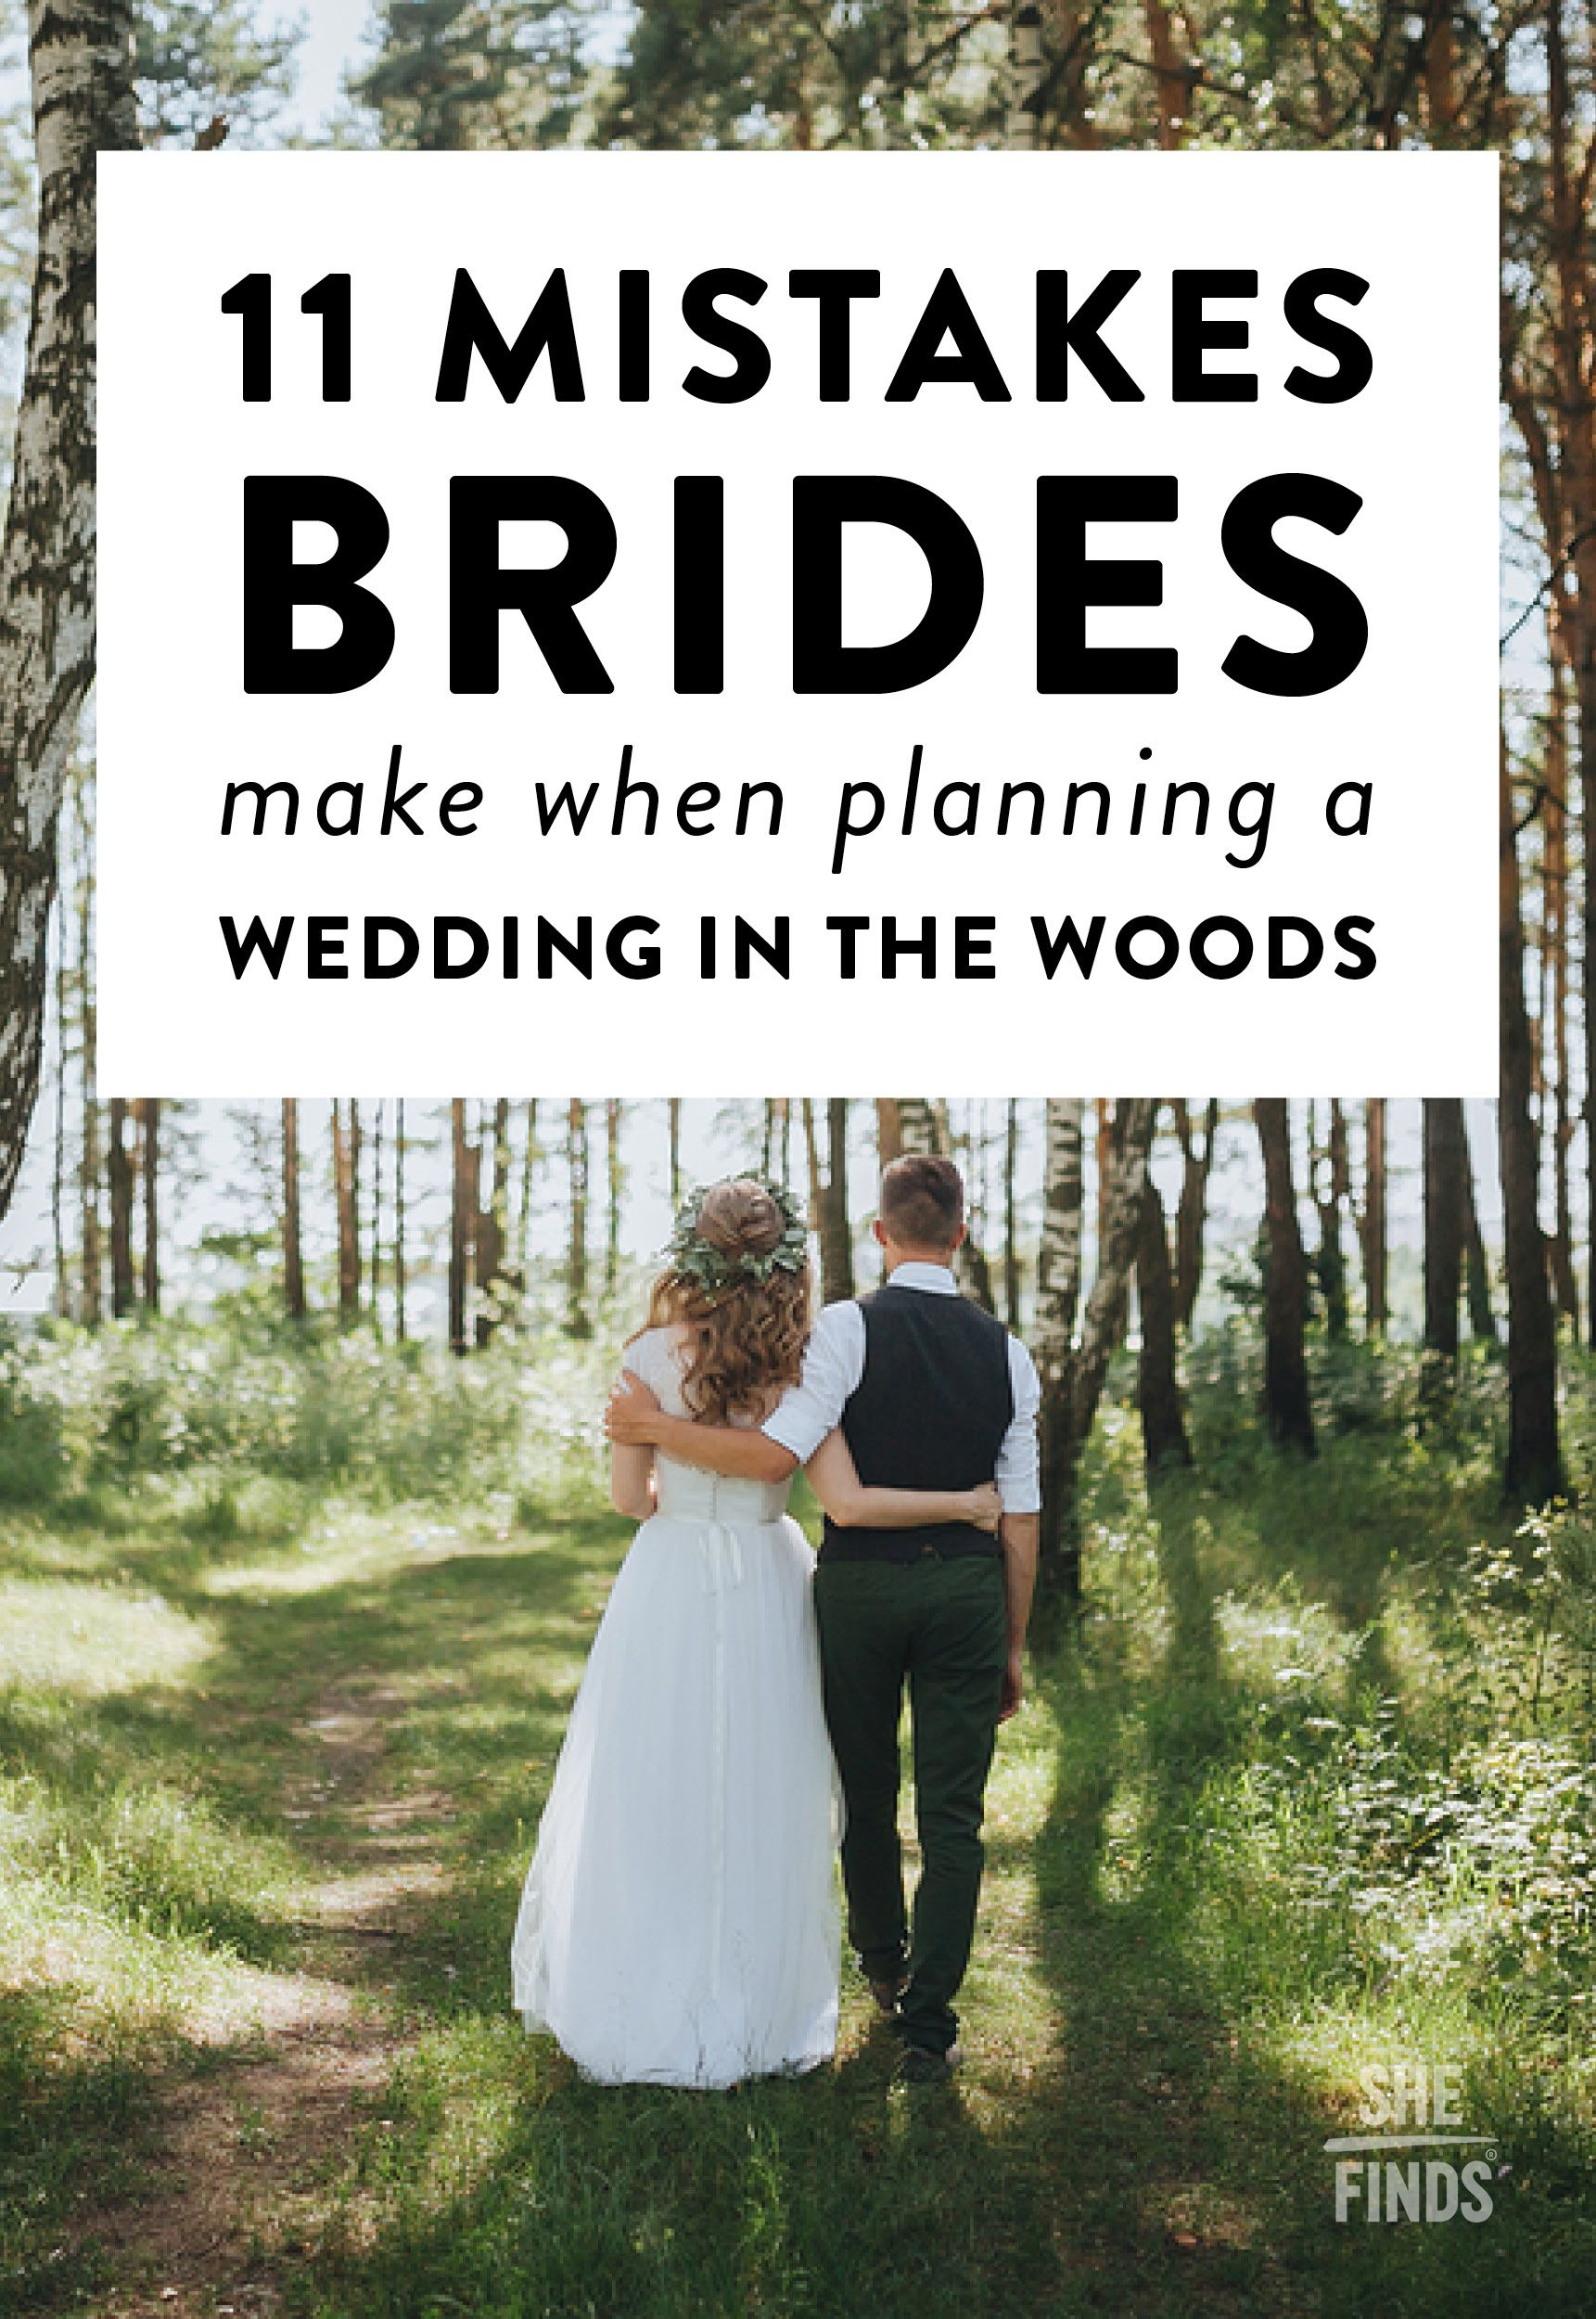 Right! seems When planning with brides